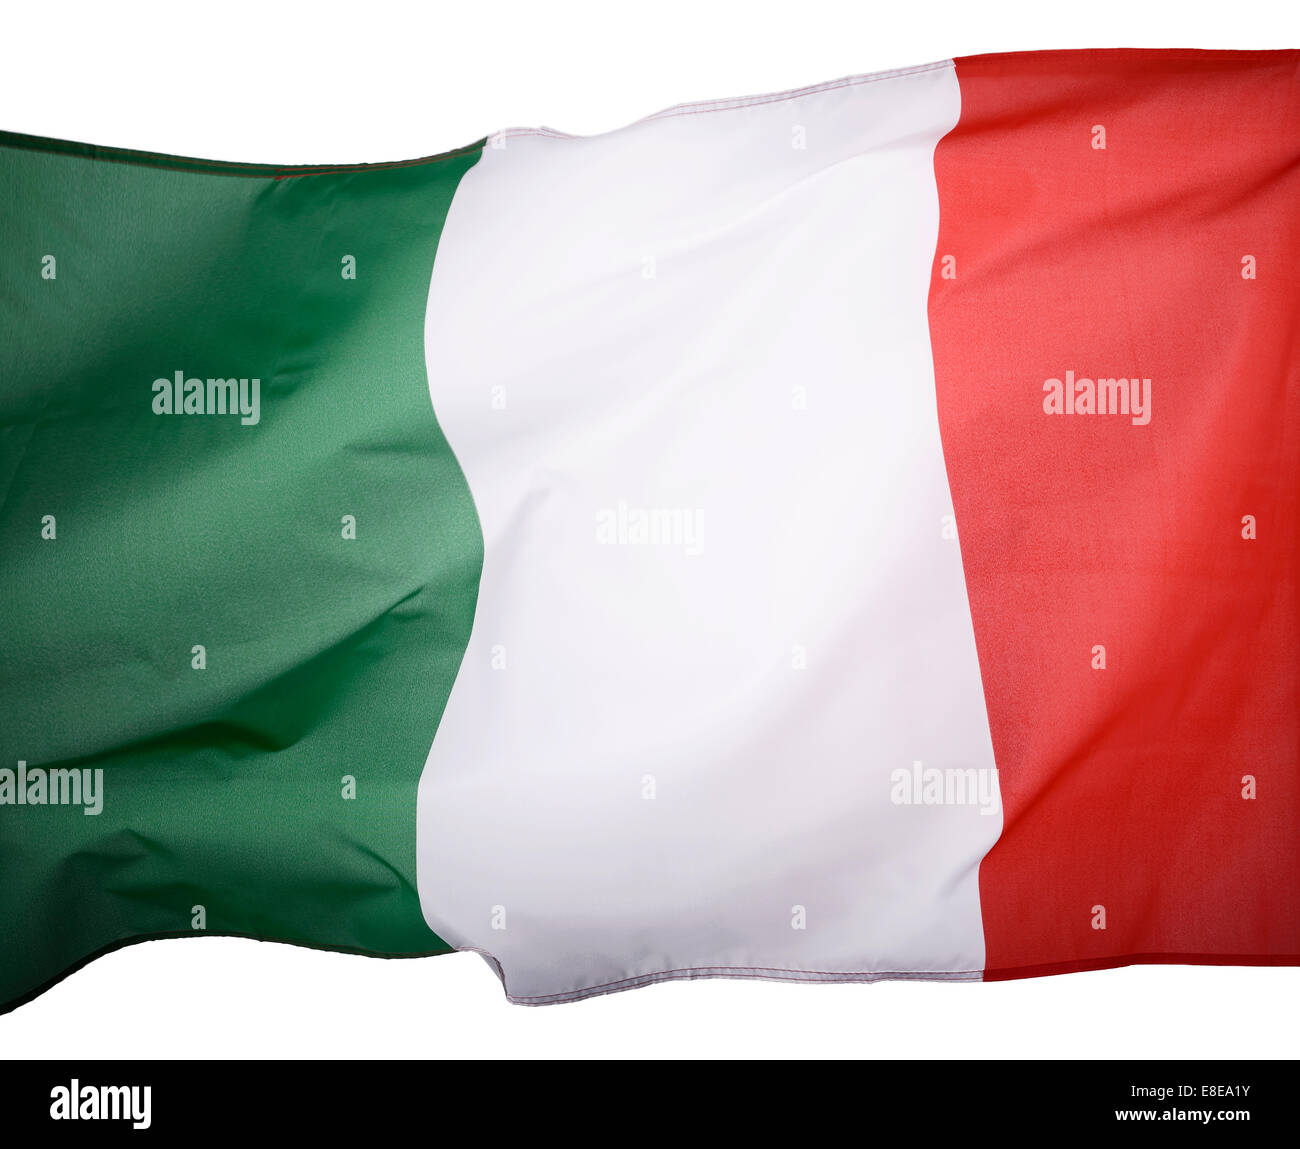 Close up detail of an Italian flag - Stock Image